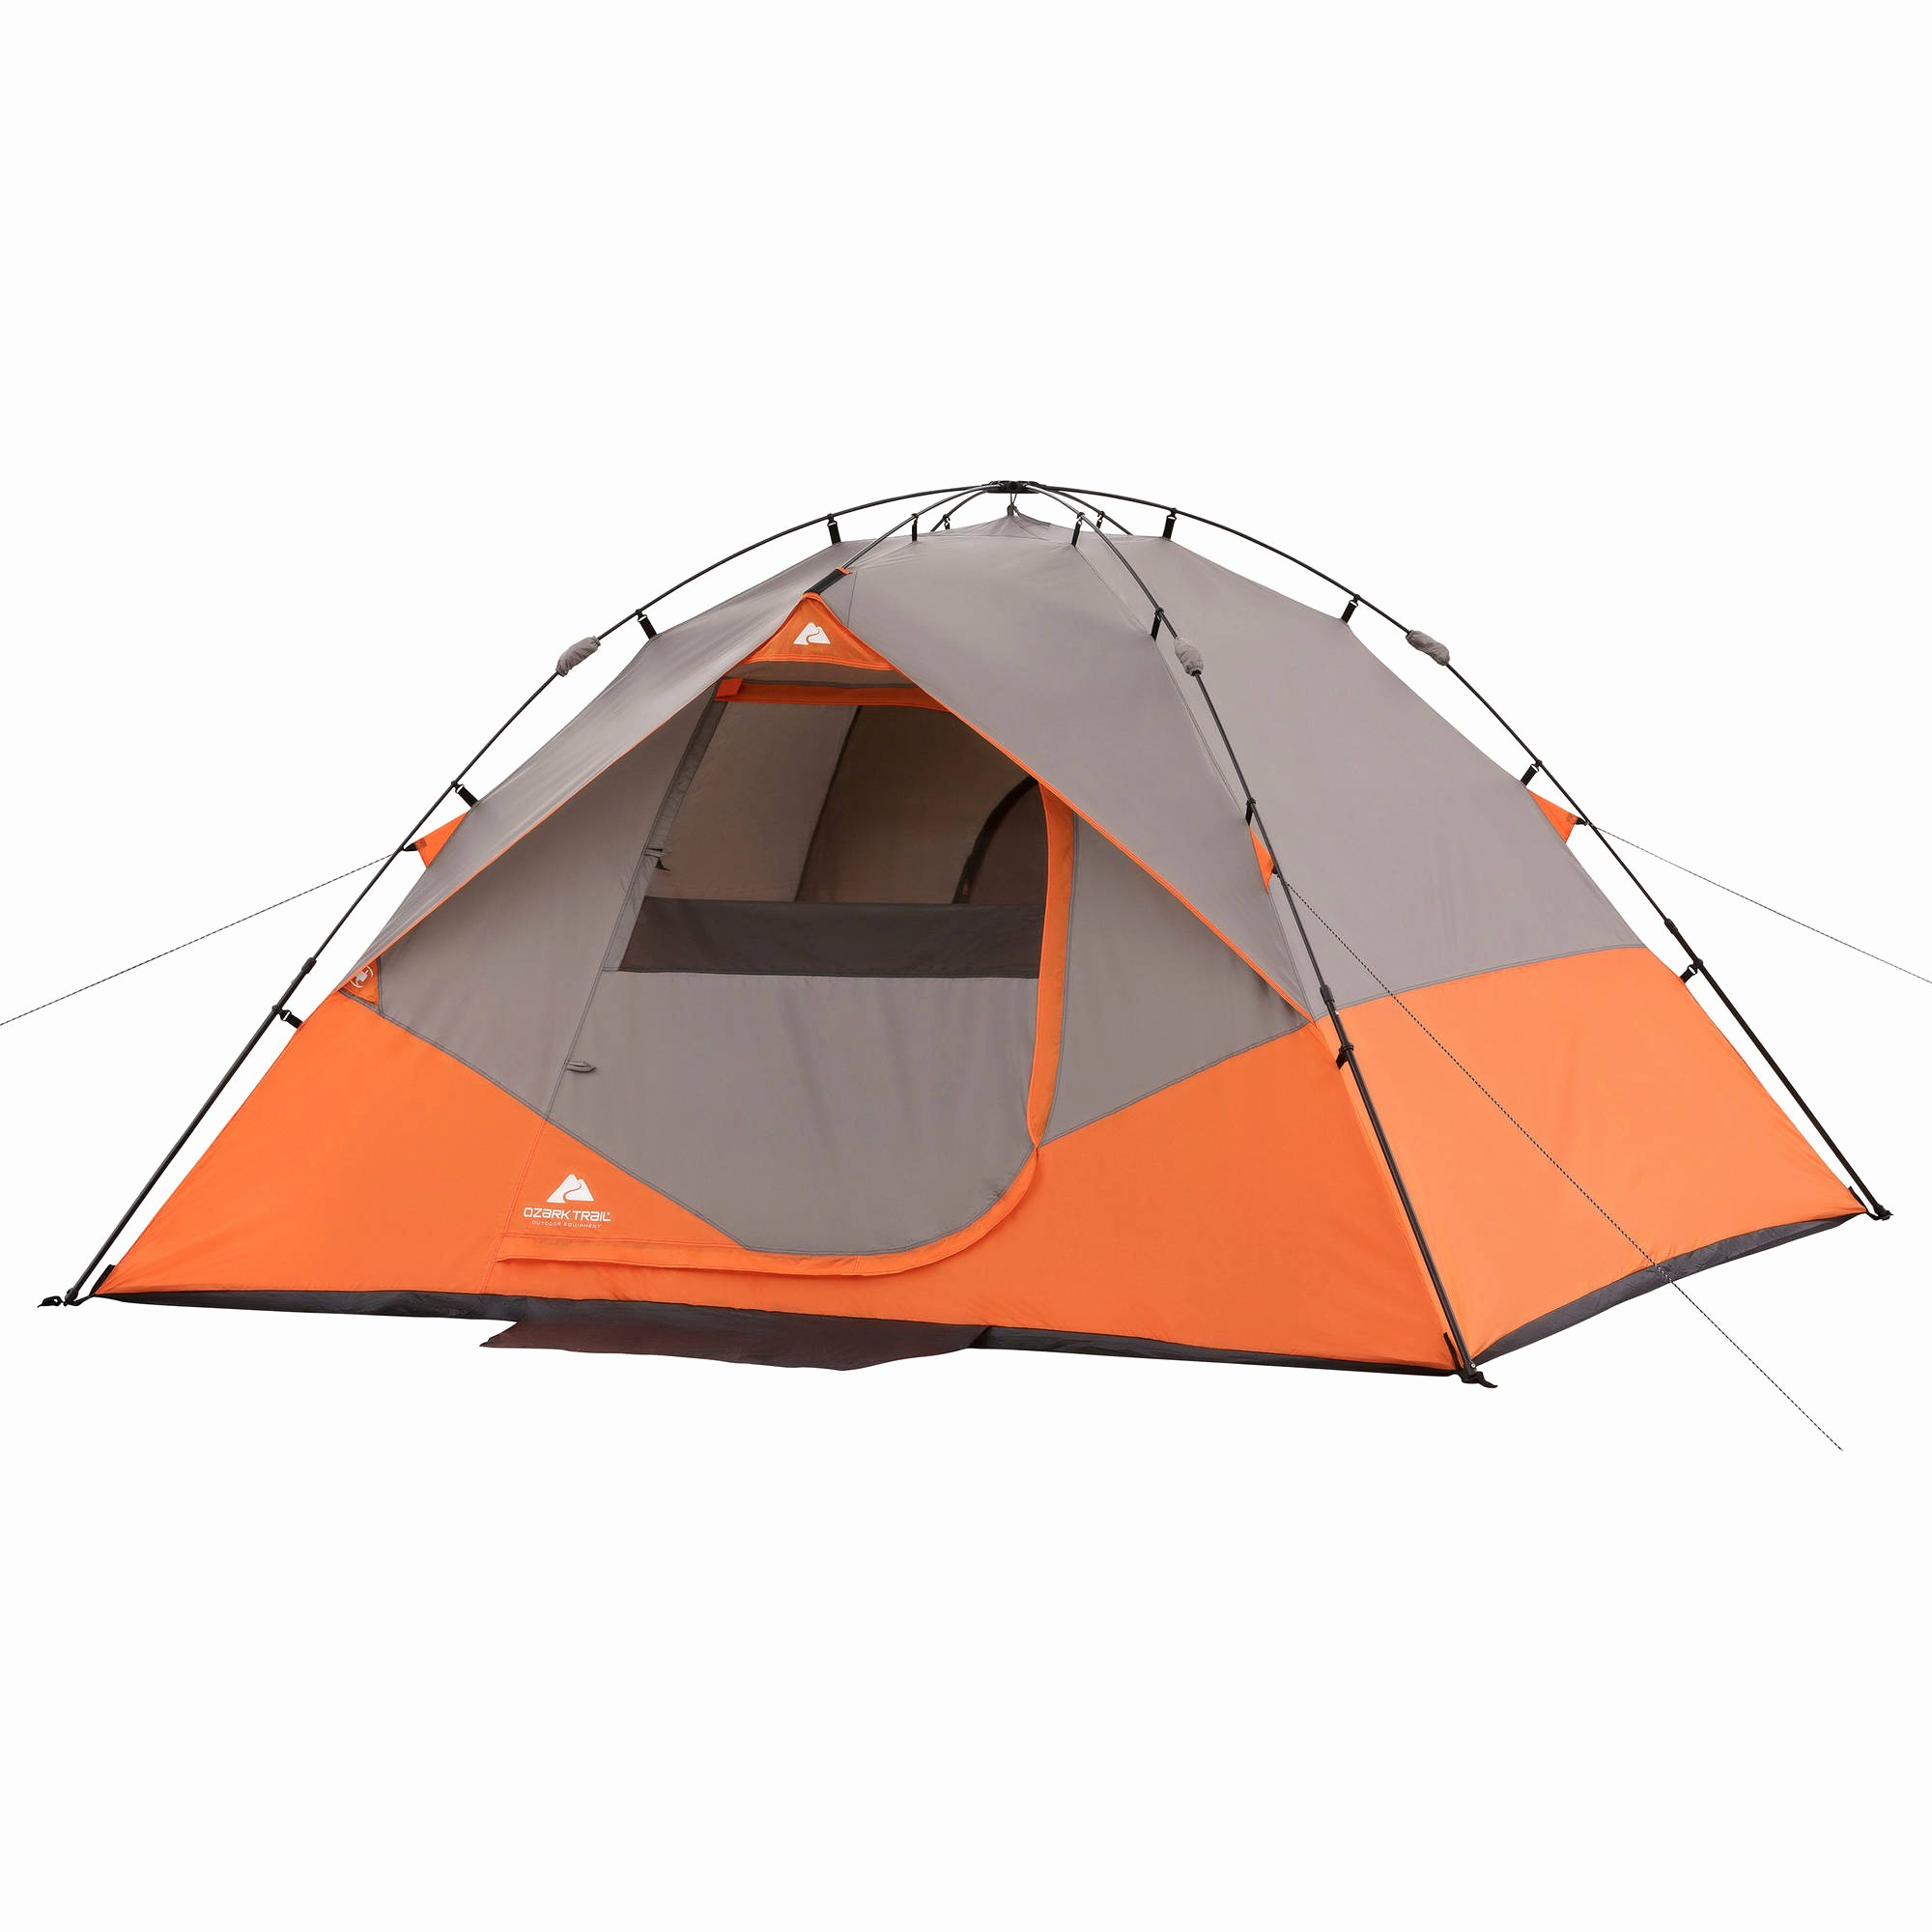 How to Make Name Tents Fresh Ozark Trail Camping Tents Parts